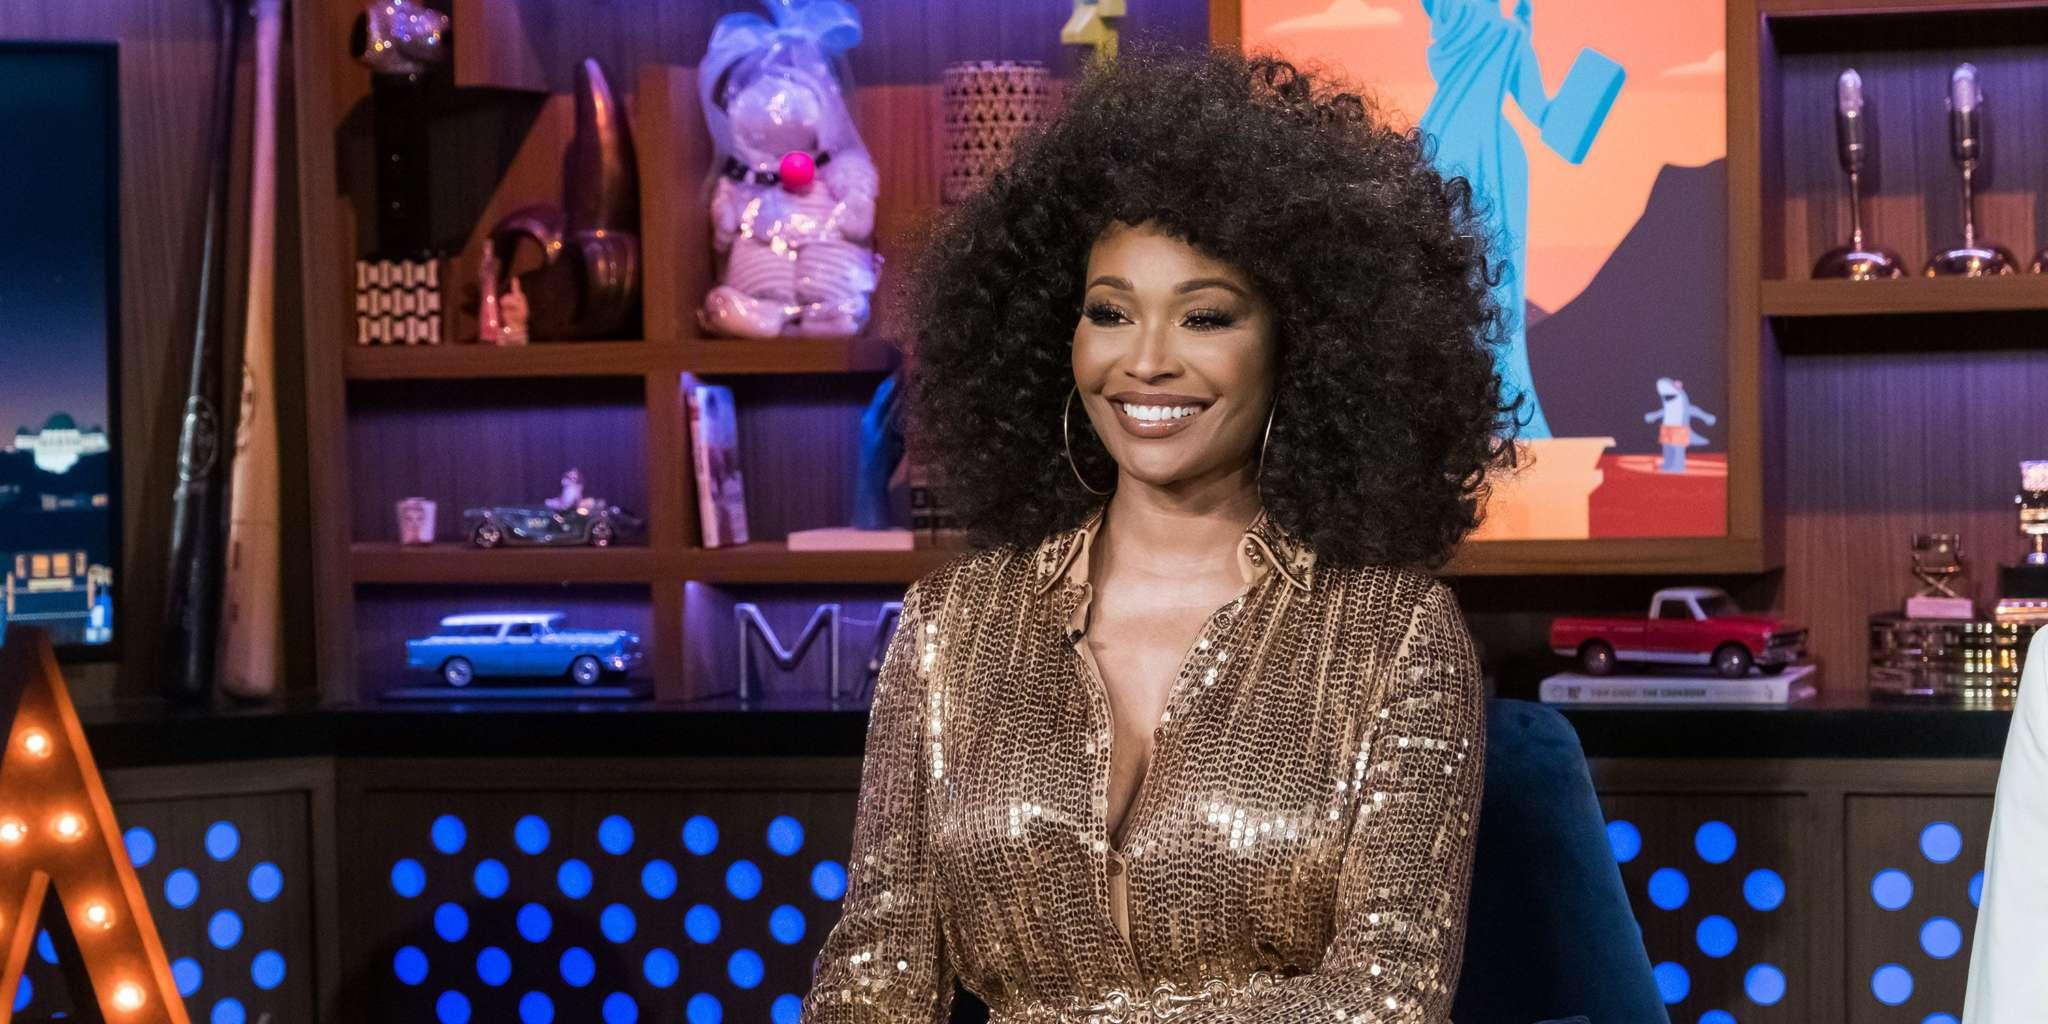 Cynthia Bailey Tells Fans What They Need While Traveling Amidst The Global Coronavirus Increasing Fear - People Bash Her For This Reason